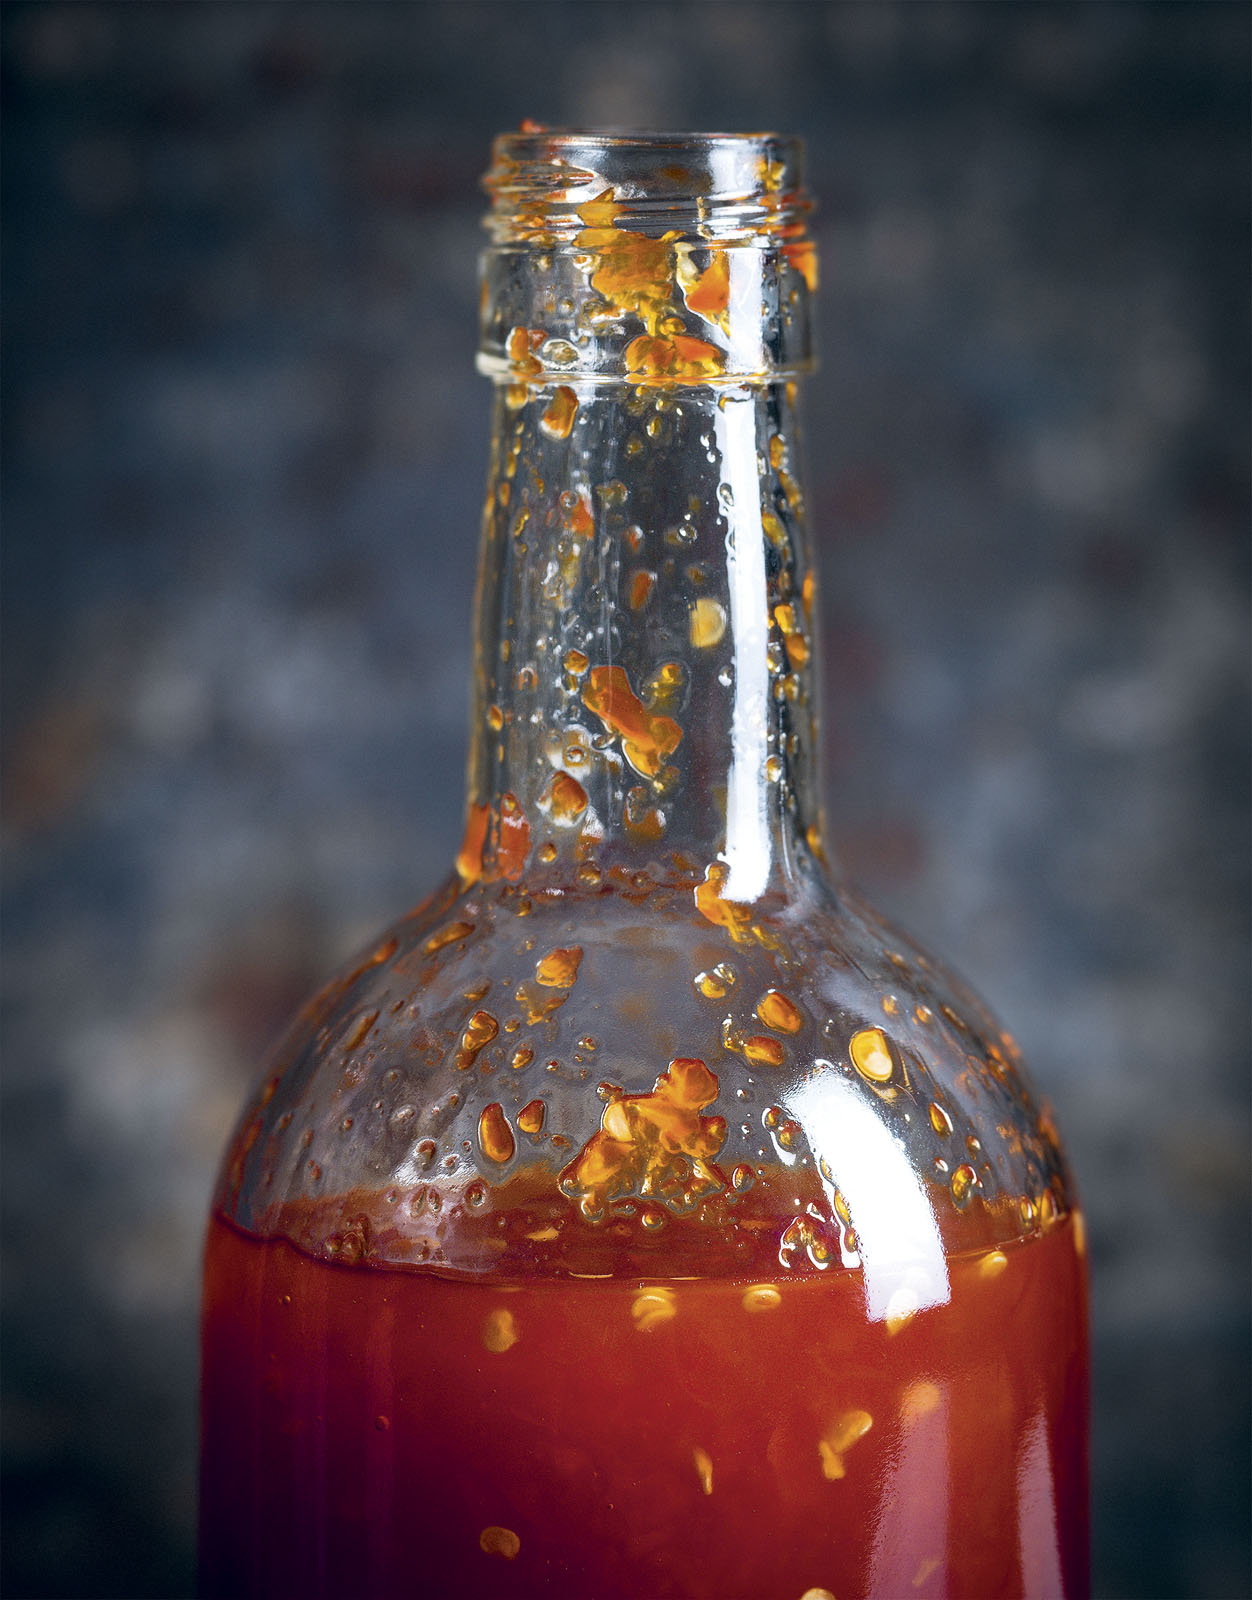 Sweet Chilli Sauce (from Condiments)